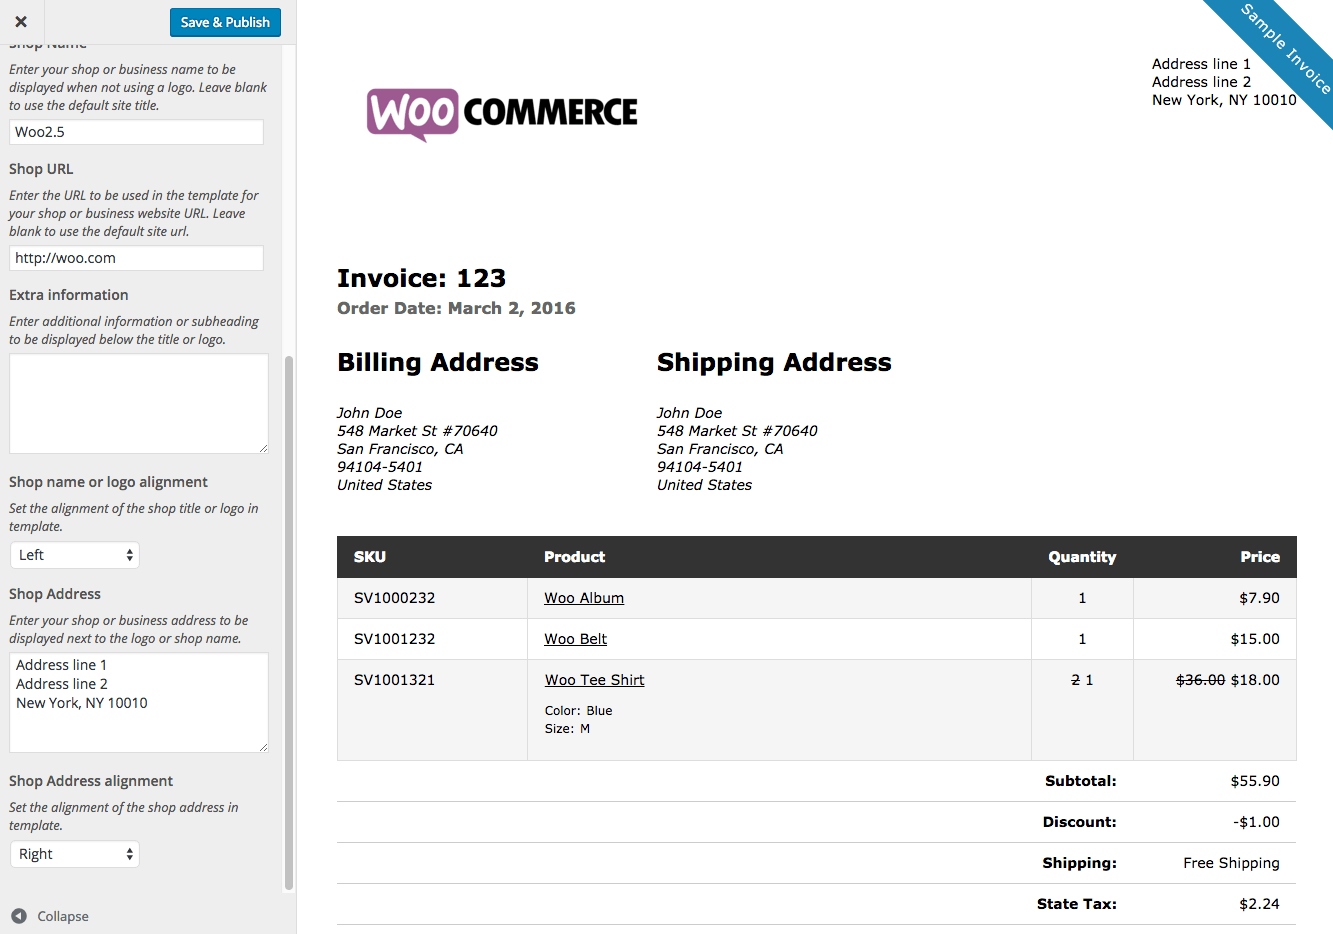 Soulfulpowerus  Personable Woocommerce Print Invoices Amp Packing Lists  Woocommerce Docs With Fascinating Woocommerce Print Invoices  Packing Lists Customizer With Astounding Payment Without Invoice Also Automatic Invoicing Software In Addition Free Software Invoice And Marketing Invoice Template As Well As Invoice Bills Additionally Company Invoice Forms From Docswoocommercecom With Soulfulpowerus  Fascinating Woocommerce Print Invoices Amp Packing Lists  Woocommerce Docs With Astounding Woocommerce Print Invoices  Packing Lists Customizer And Personable Payment Without Invoice Also Automatic Invoicing Software In Addition Free Software Invoice From Docswoocommercecom